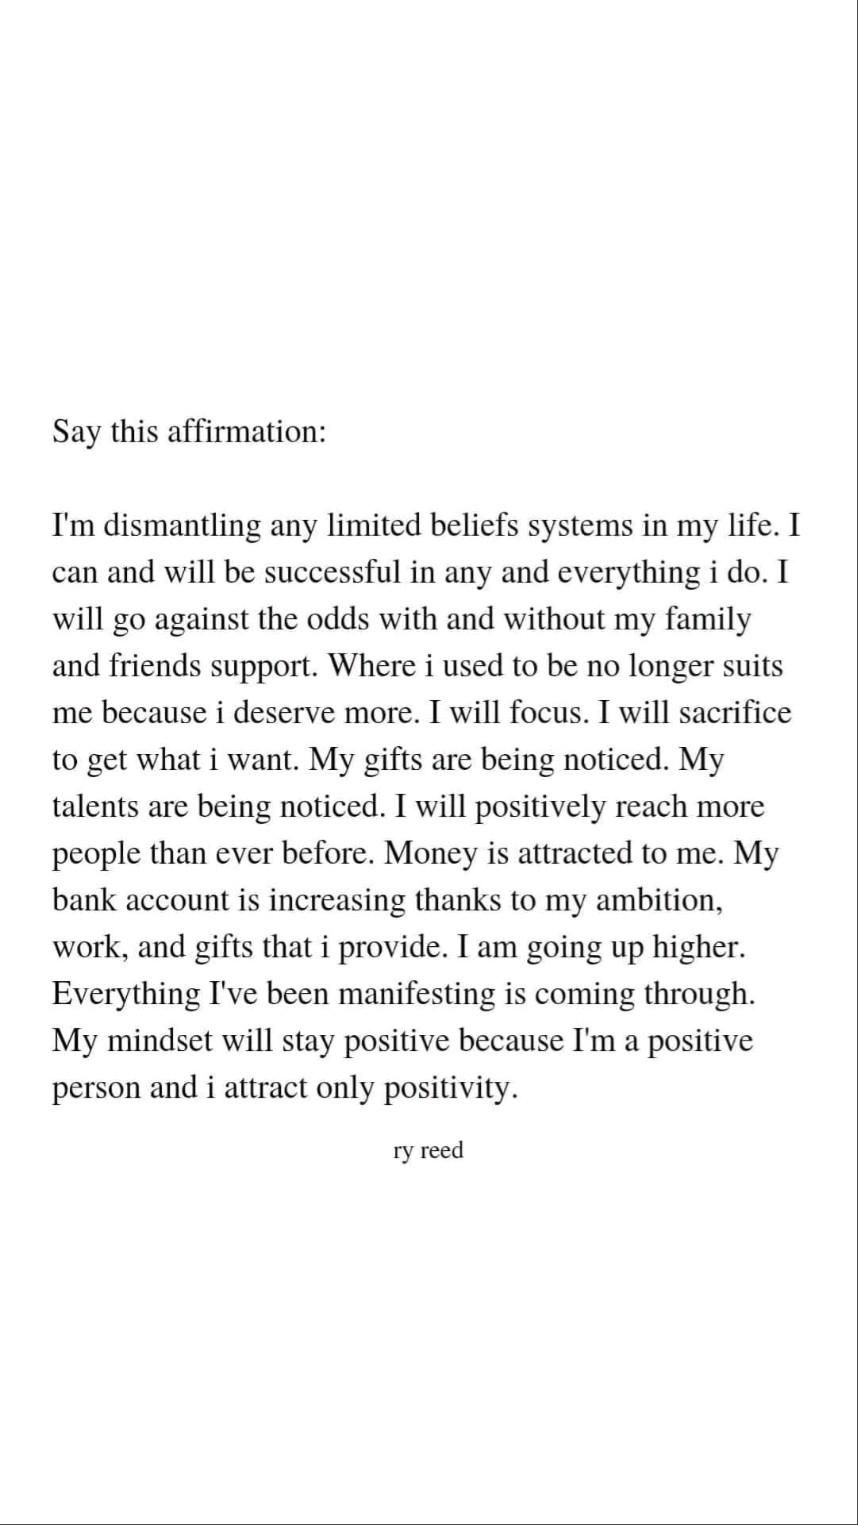 say this affirmation 7 times